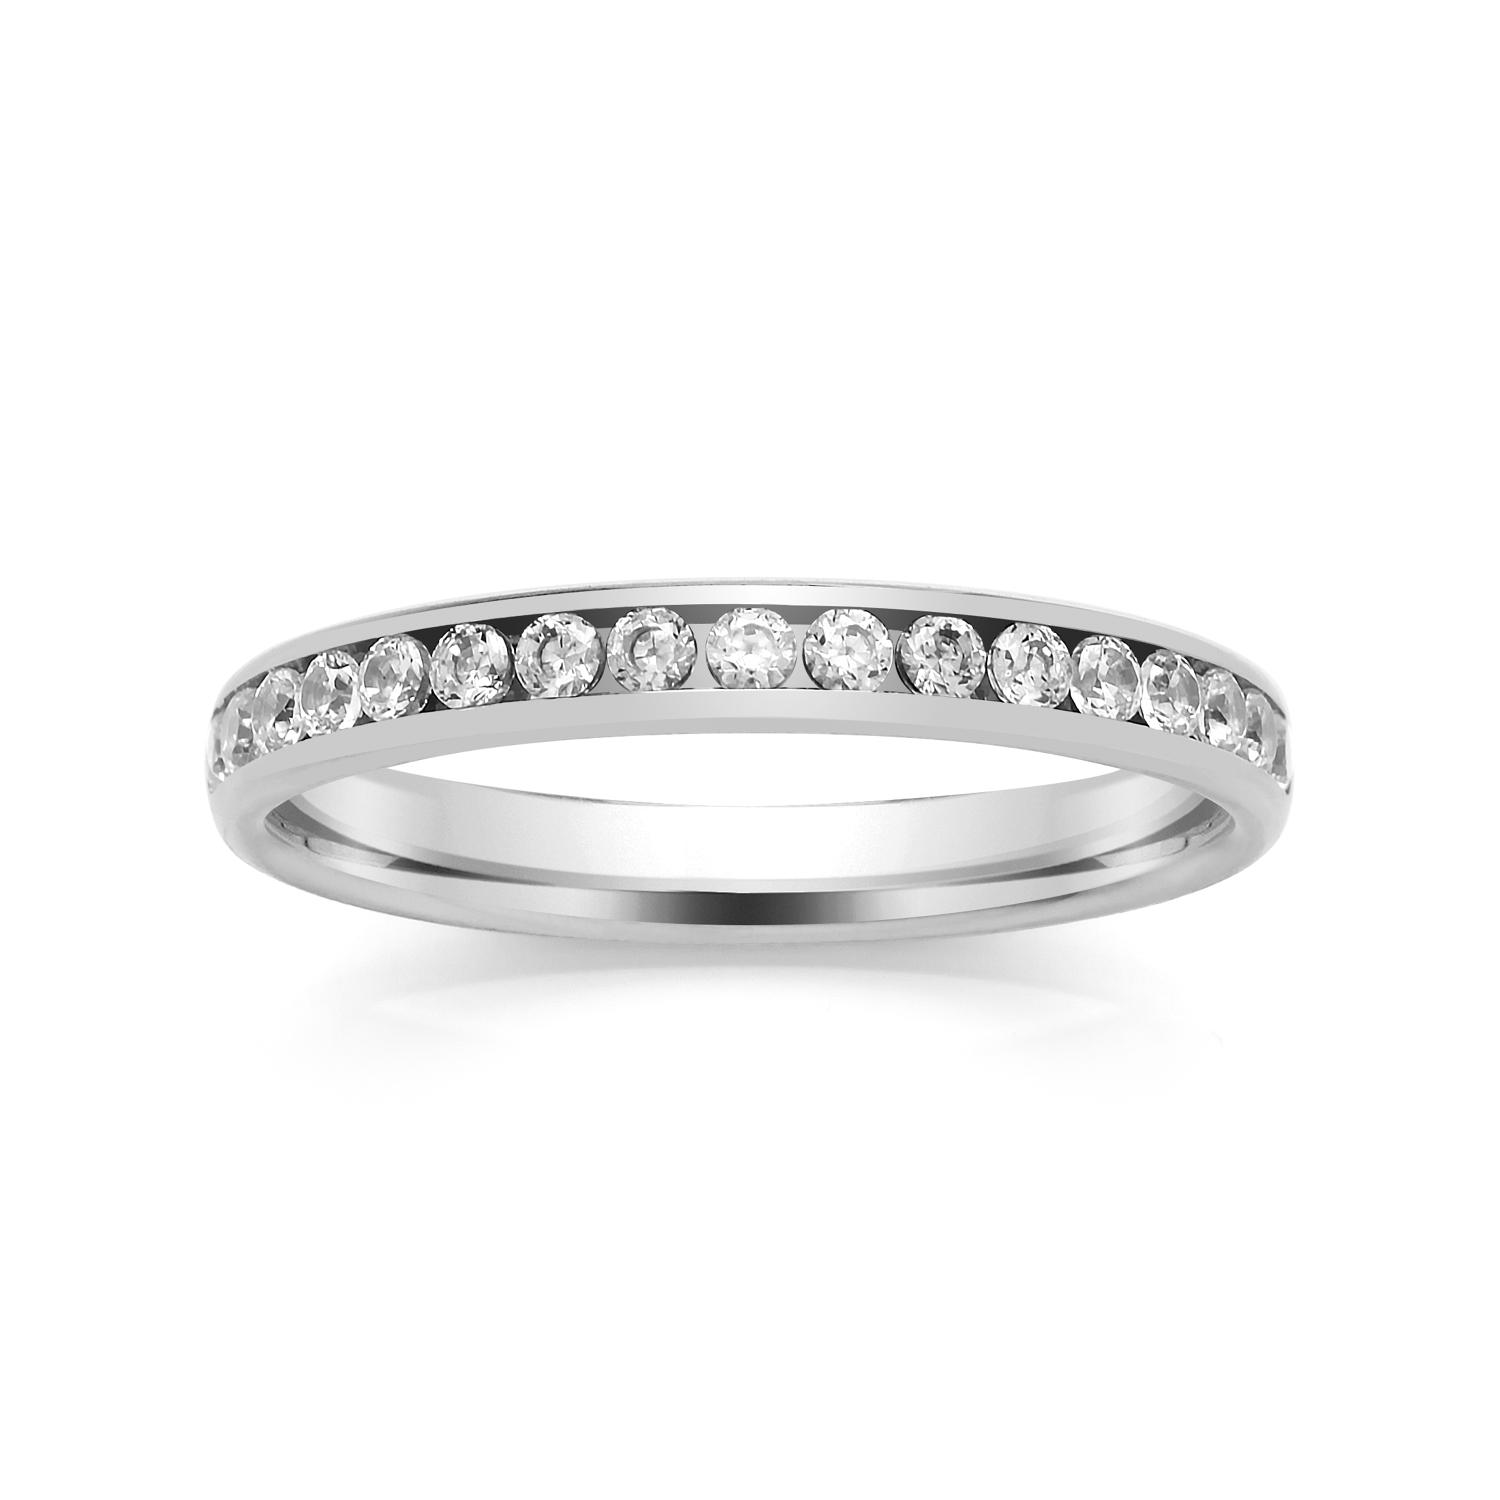 2.7mm Channel Set Diamond Ring